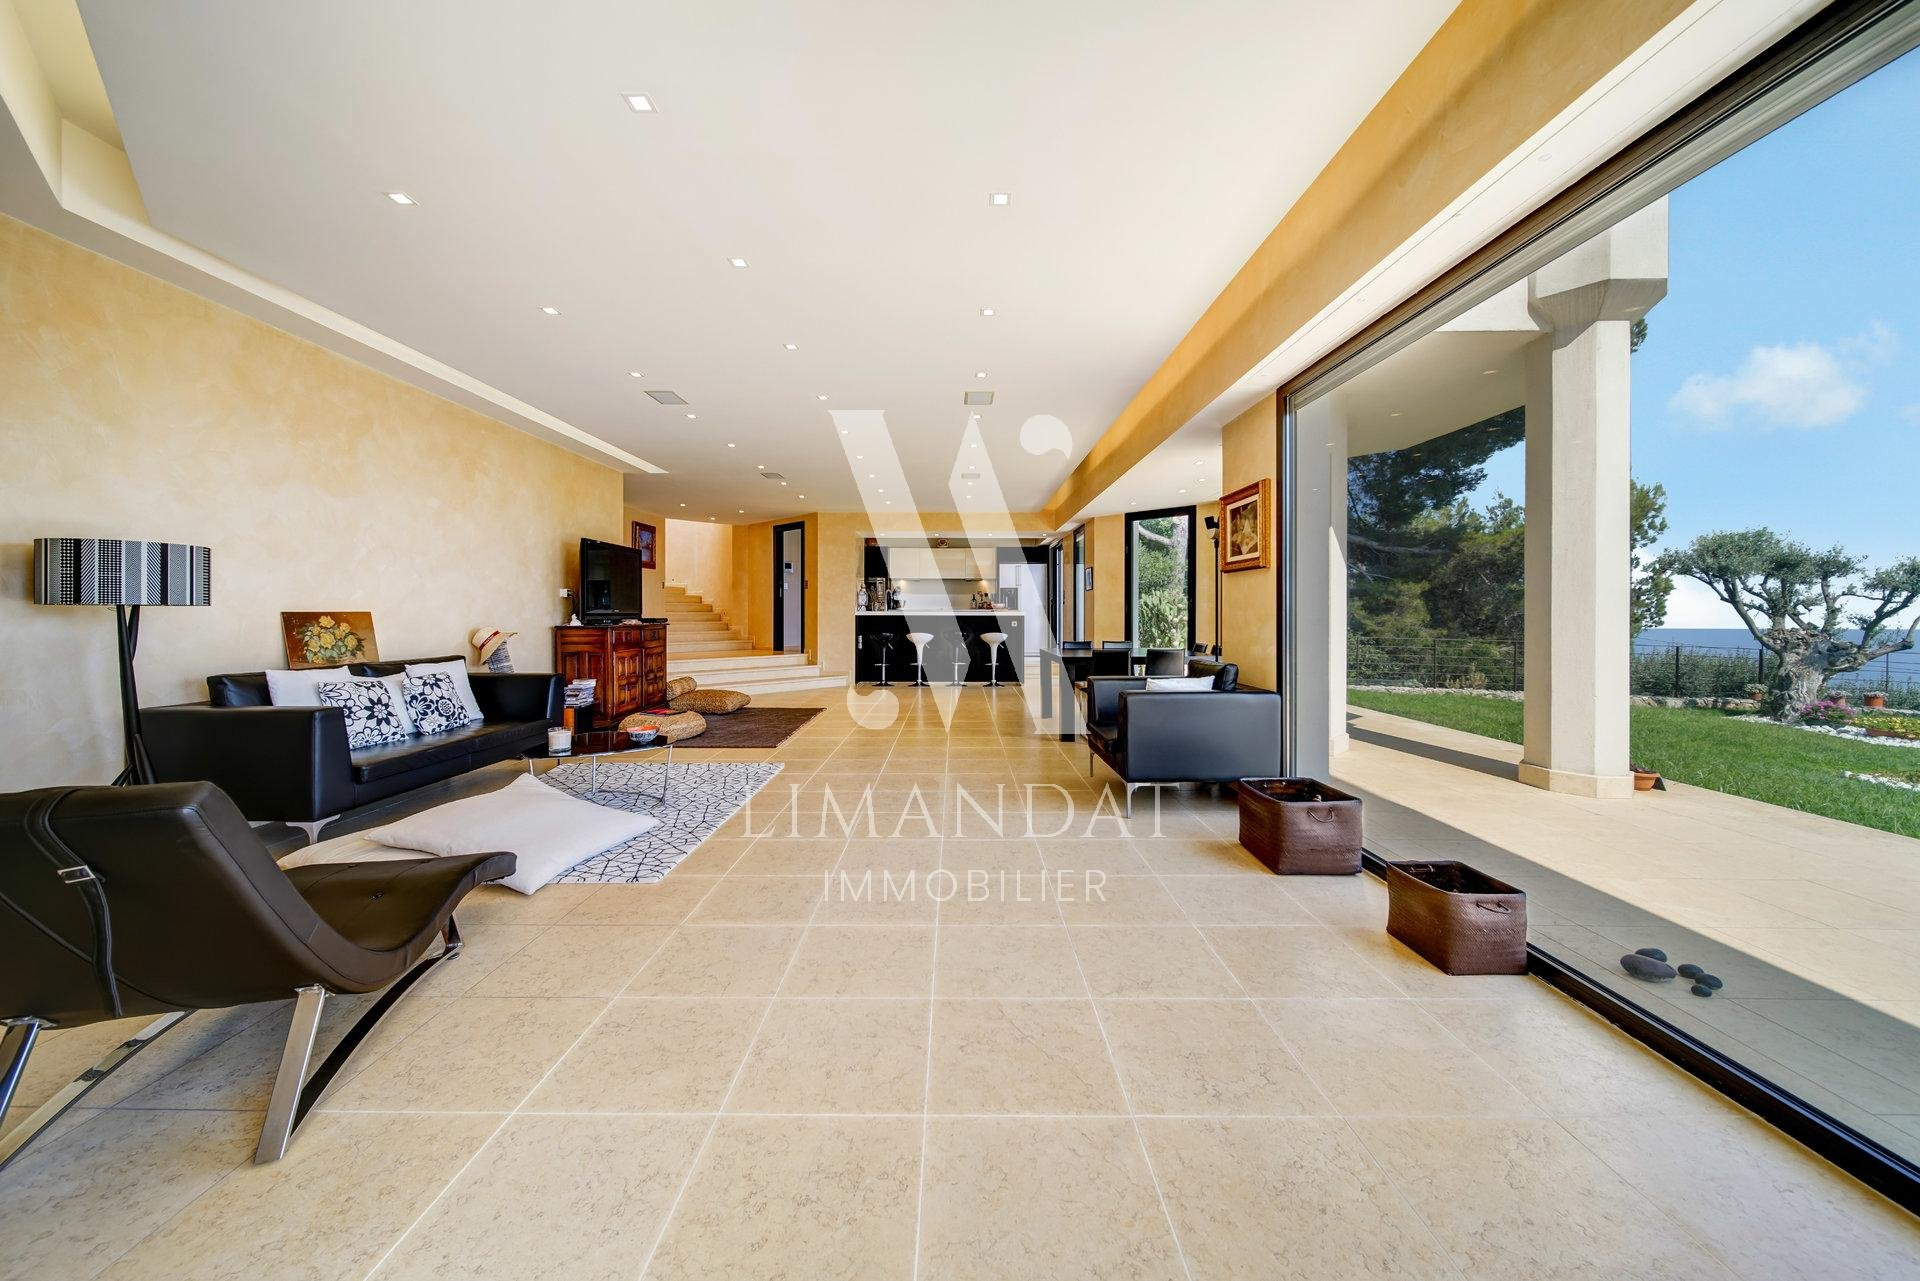 LA TURBIE - VILLA D'EXCEPTION 350 m2 vue mer